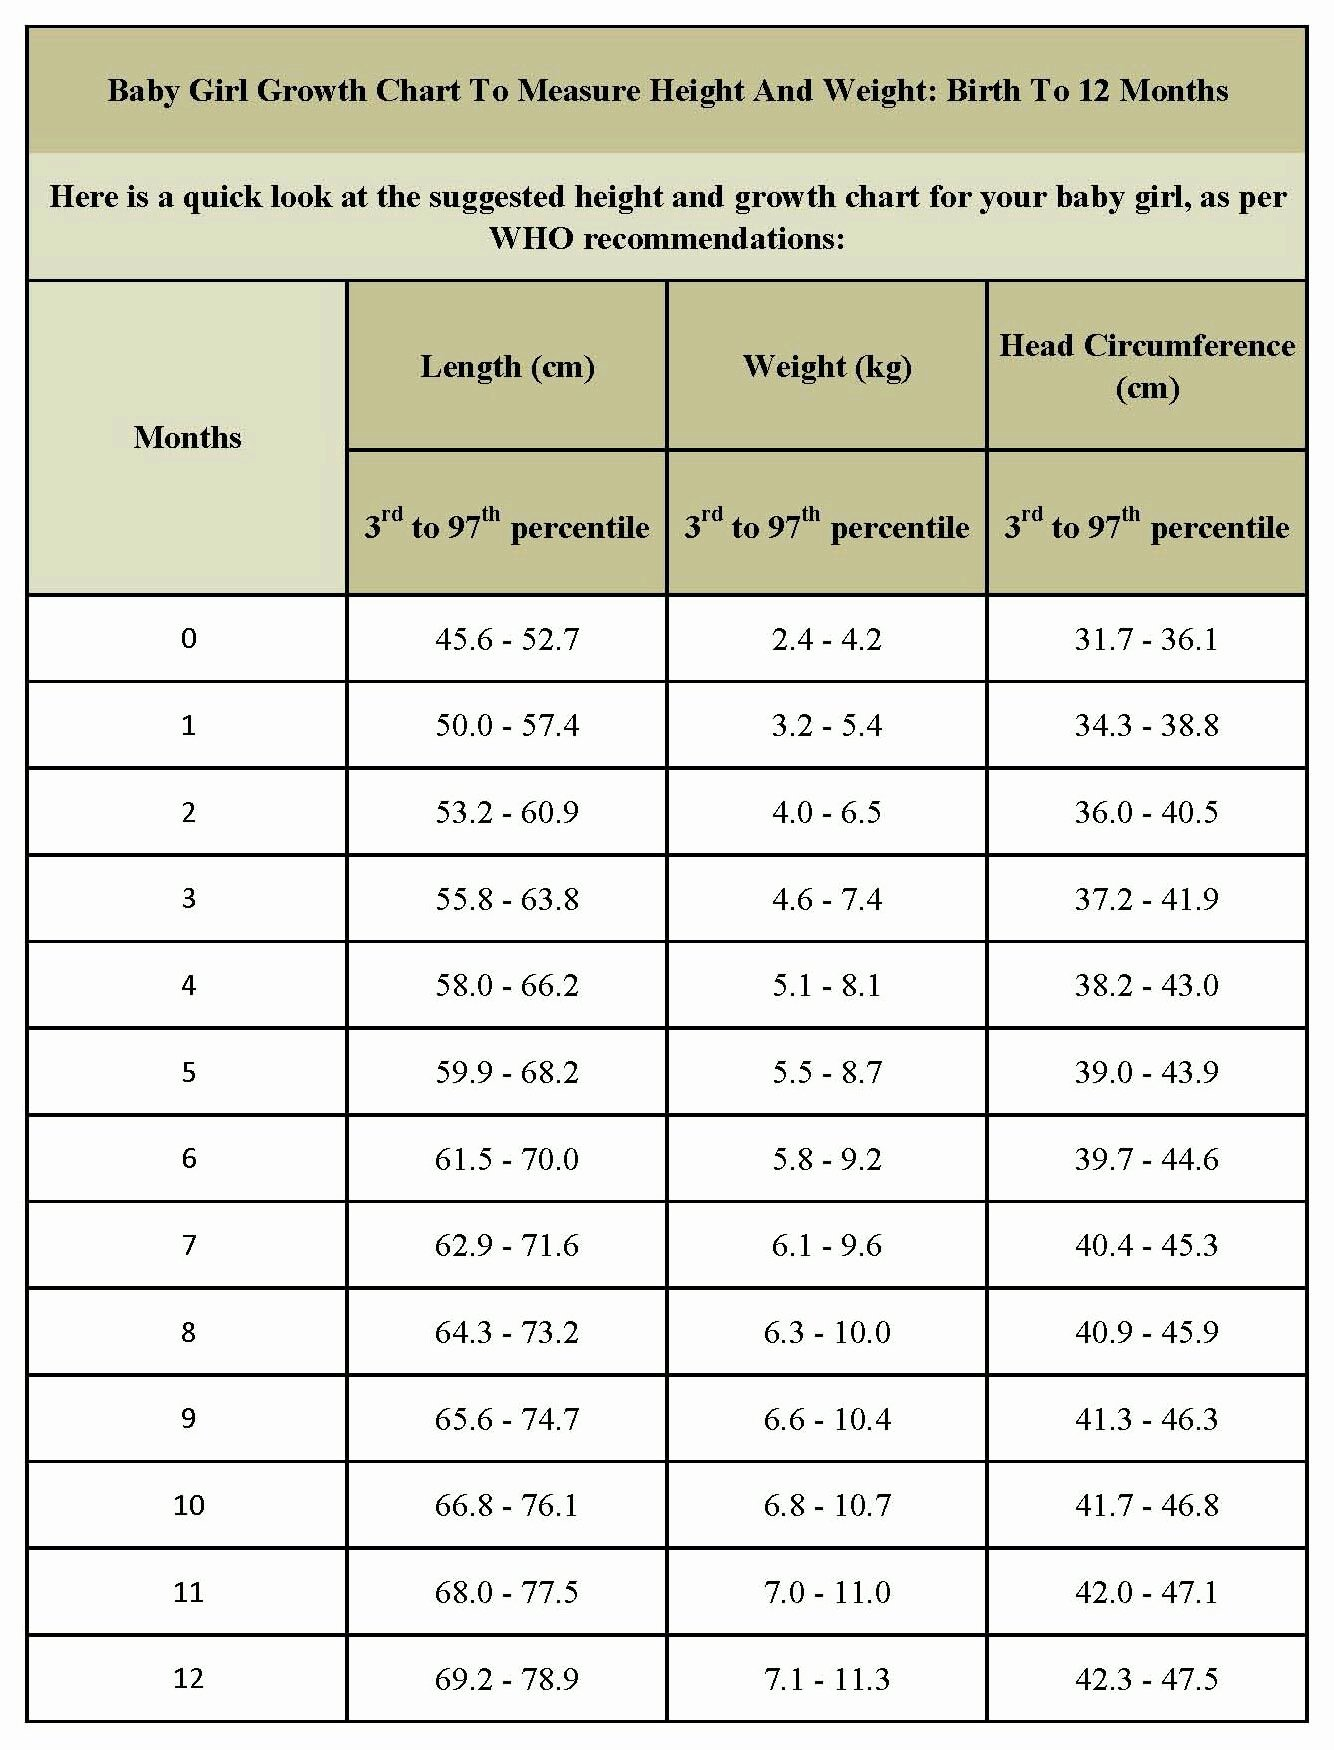 Baby Weight and Length Chart Elegant Could Anyone Post the Height Weight Head Circumference